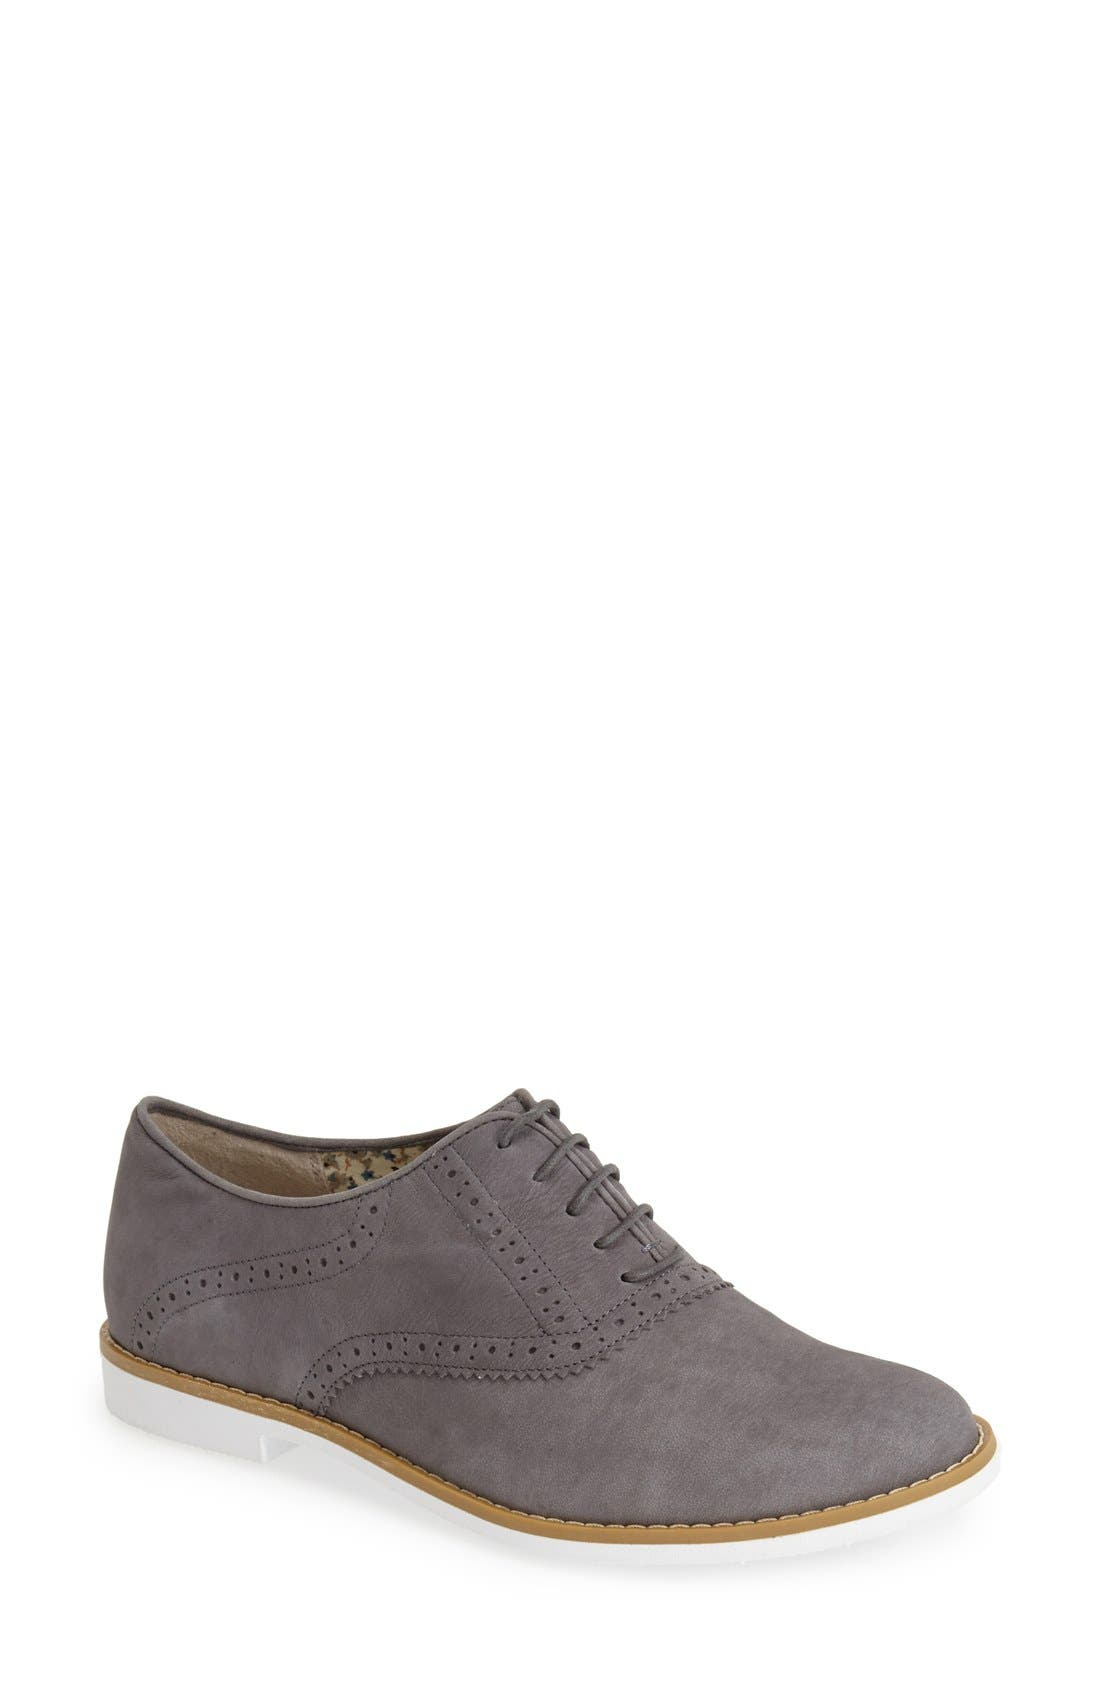 BP. 'Burt' Leather Oxford, Main, color, 035